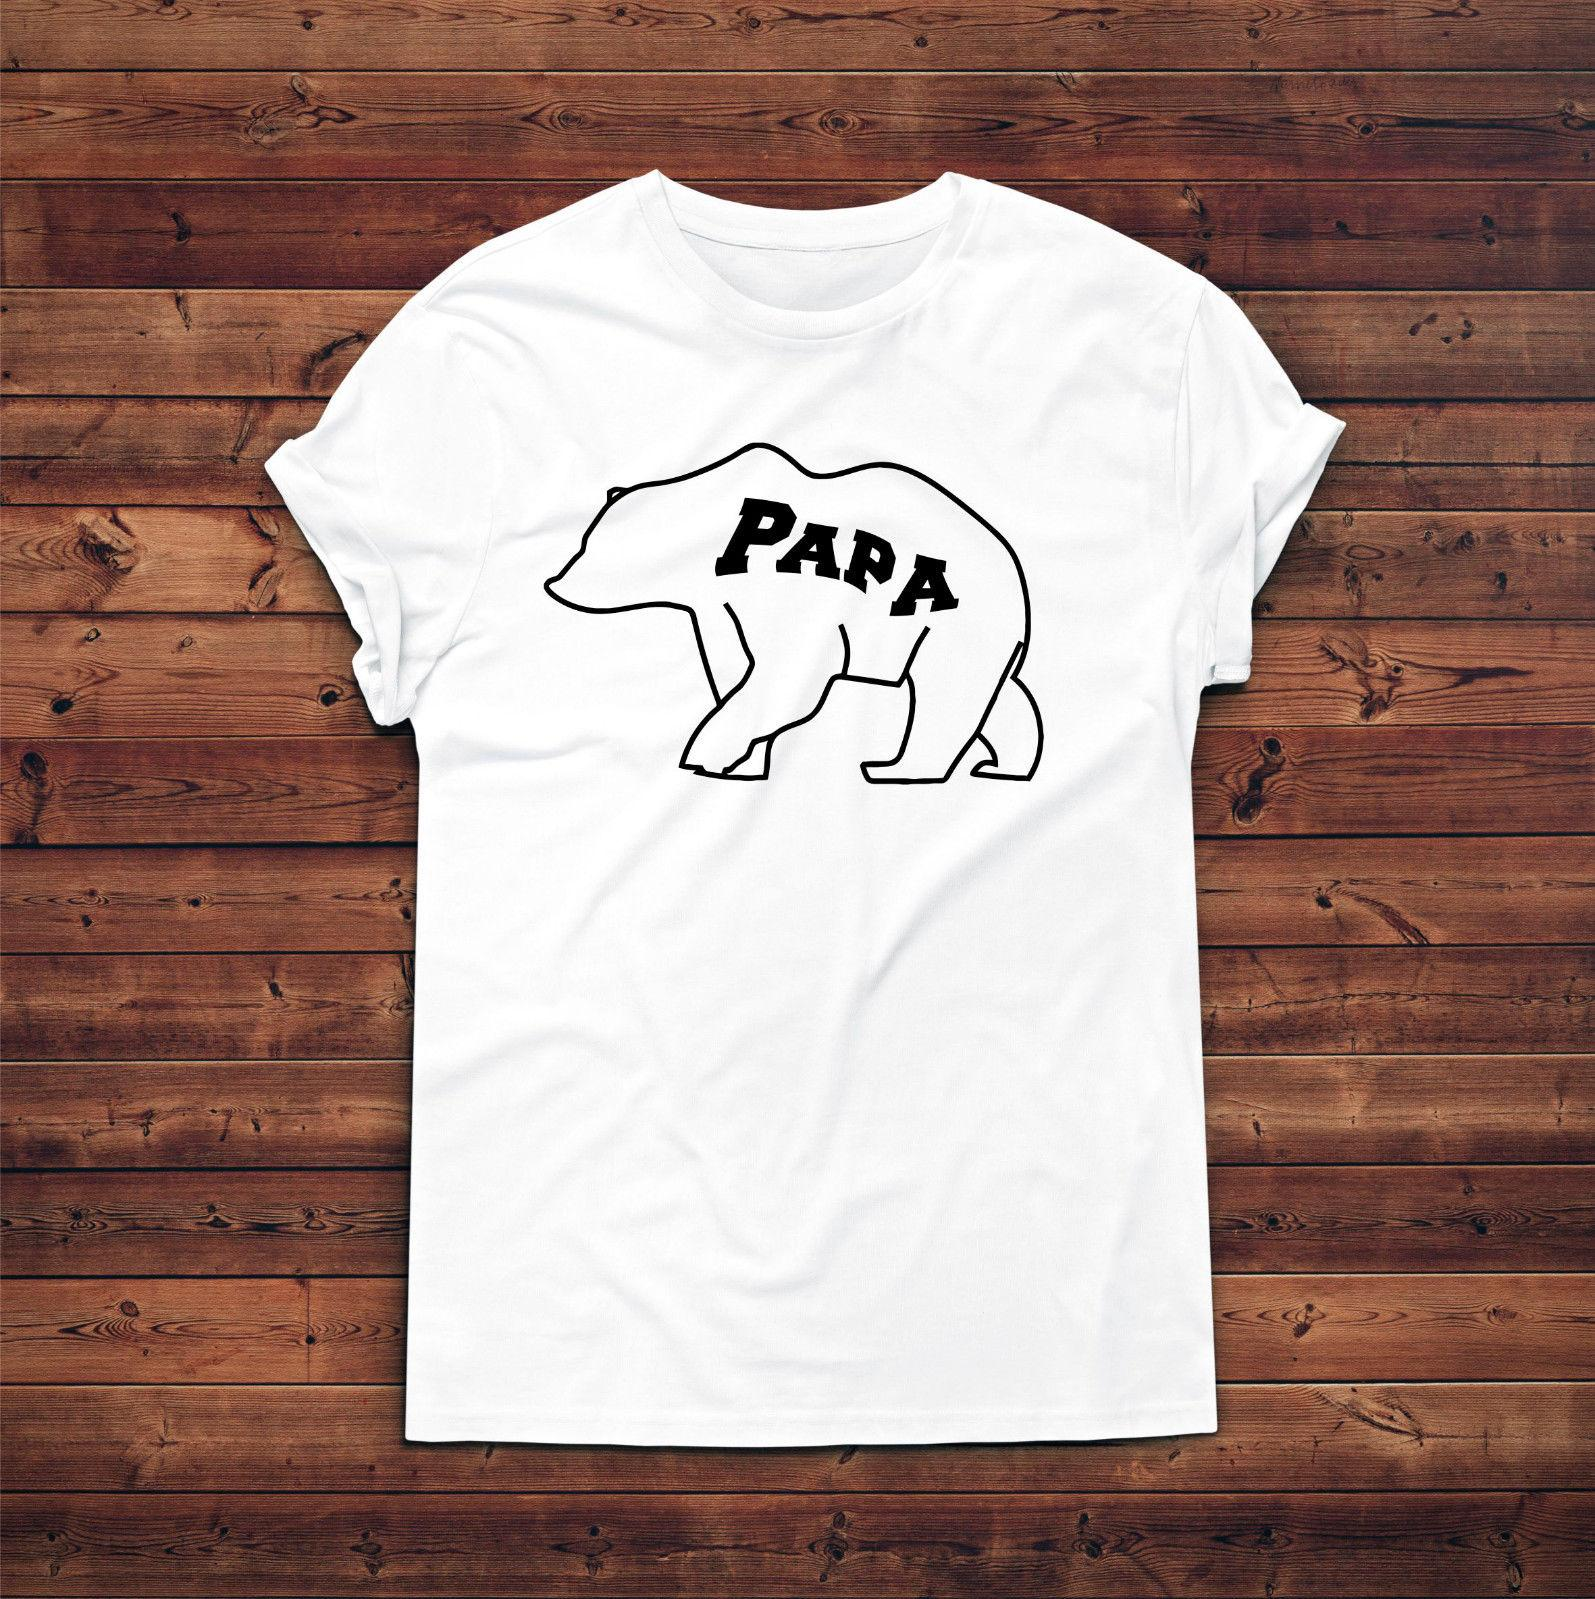 Papa Bear T ShirtGift For DadDaddy Birthday PresentNew Dad TshirtNew Daddy Men Women Unisex Fashion Tshirt Free Shipping Black